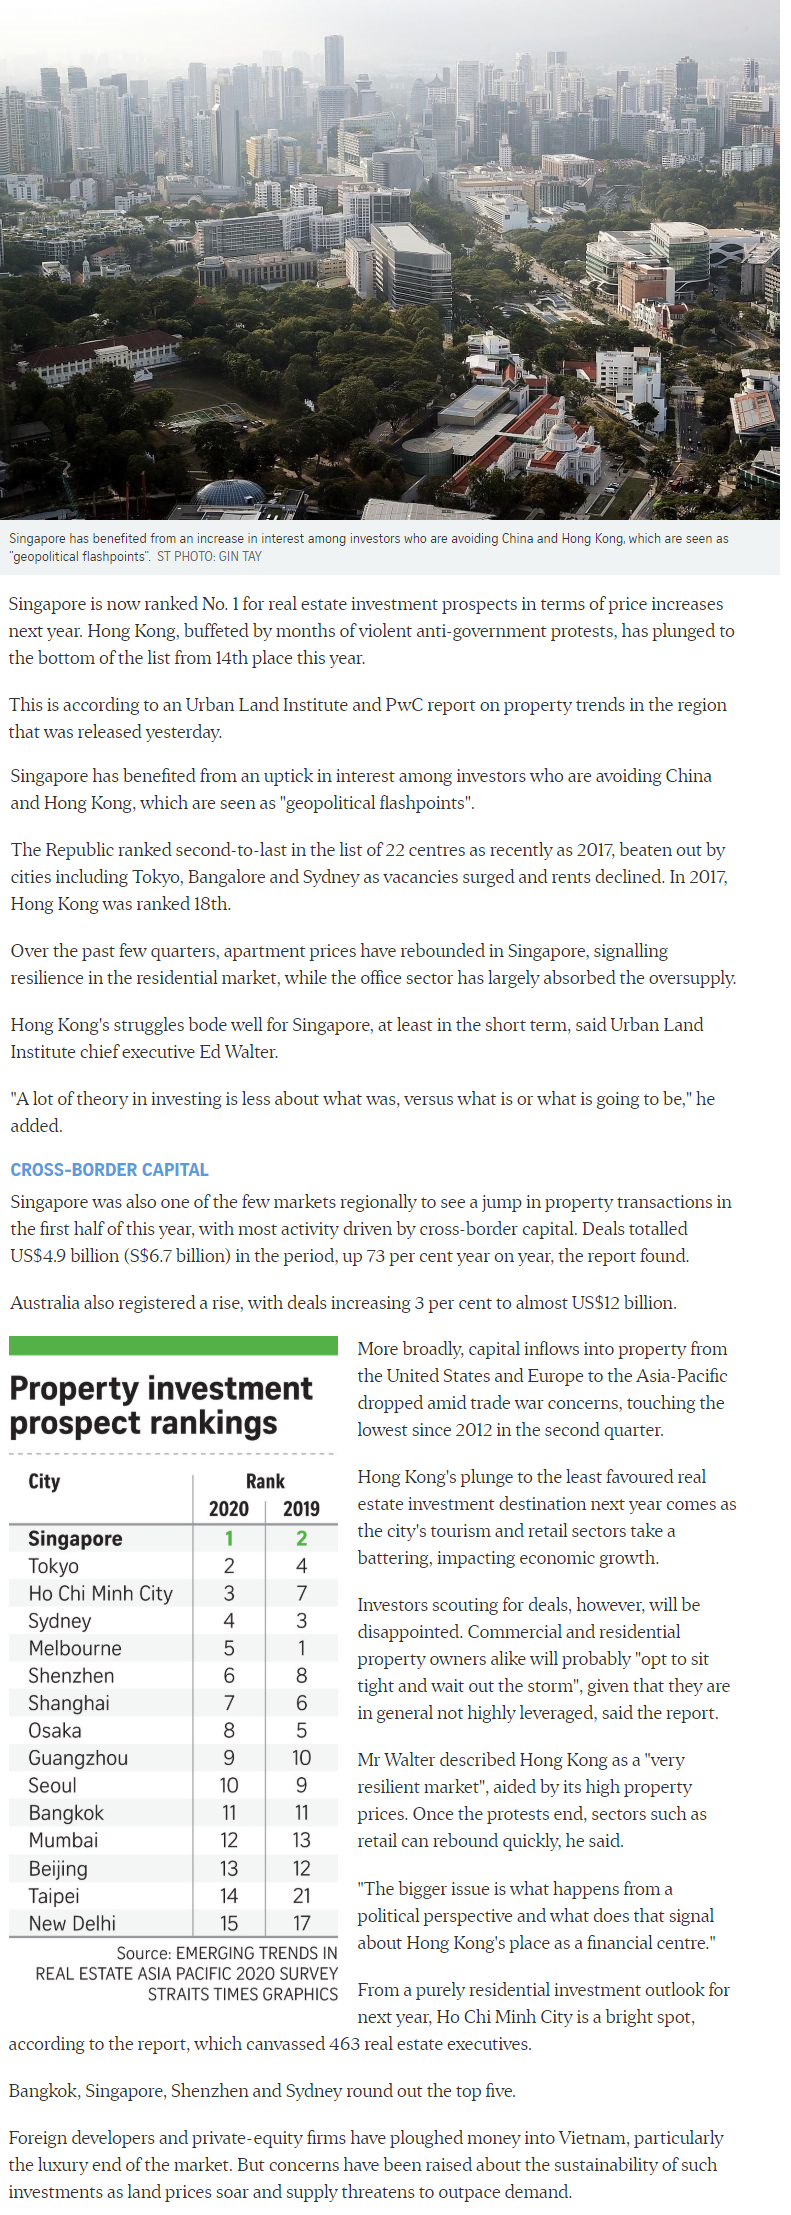 The Florence Residences - Singapore Tops Region For Property Investment Prospects